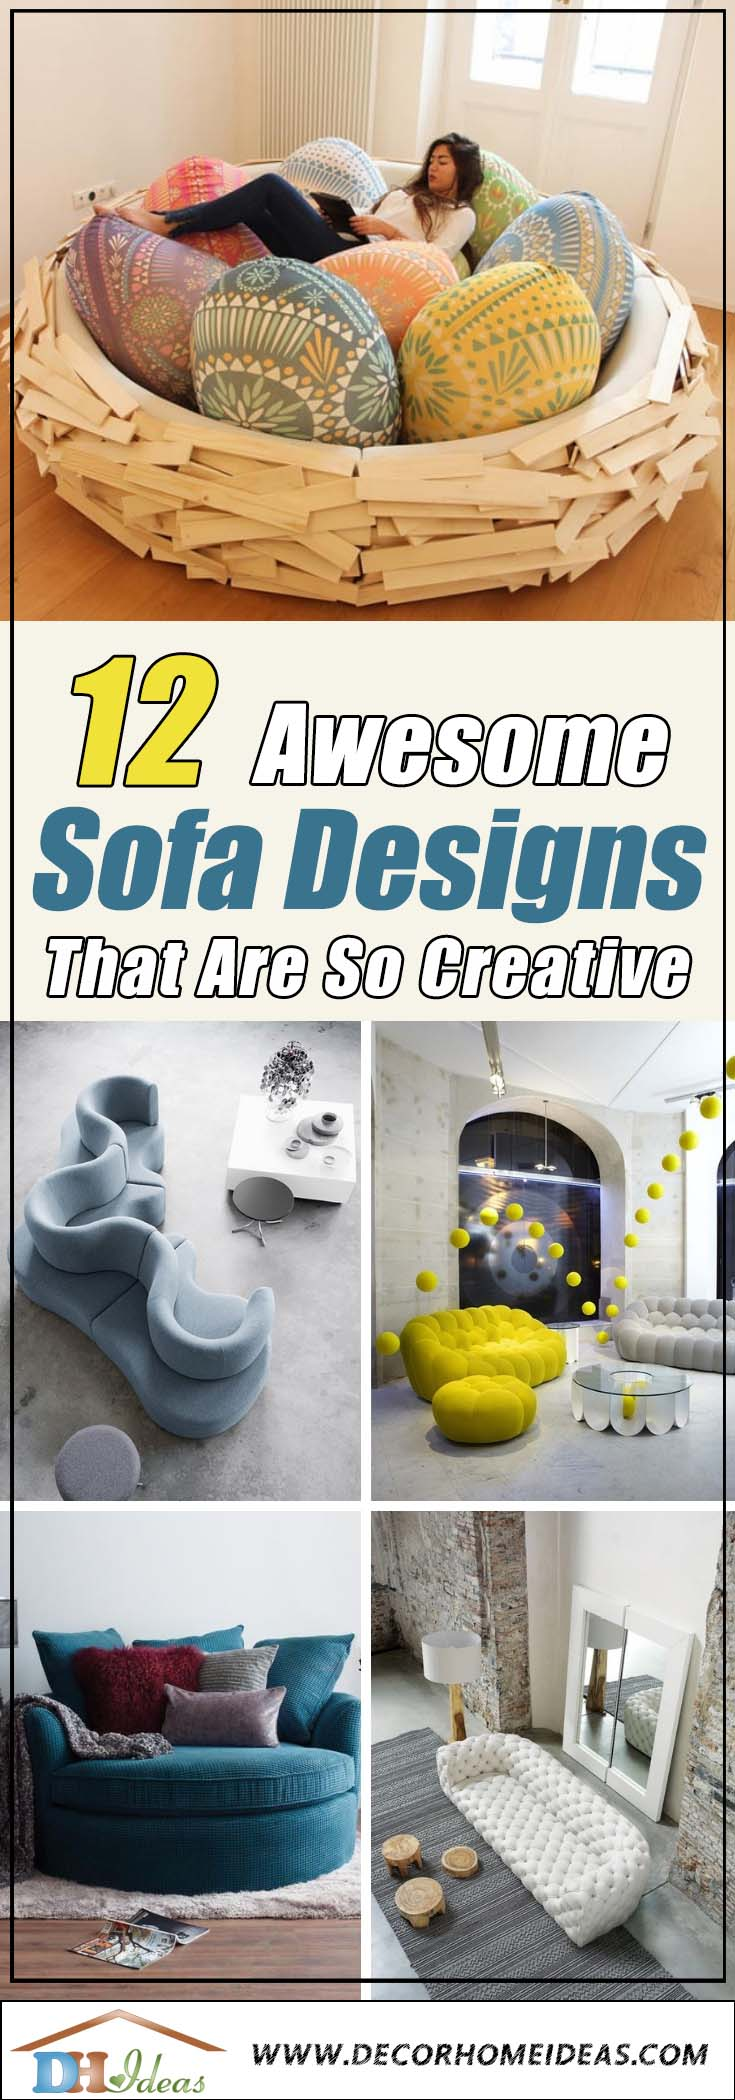 12 Creative Unforgettable Sofa Designs | Interesting sofa design incorporated in the interior design #sofa #design #furniture #interiordesign #homedecor #decorhomeideas